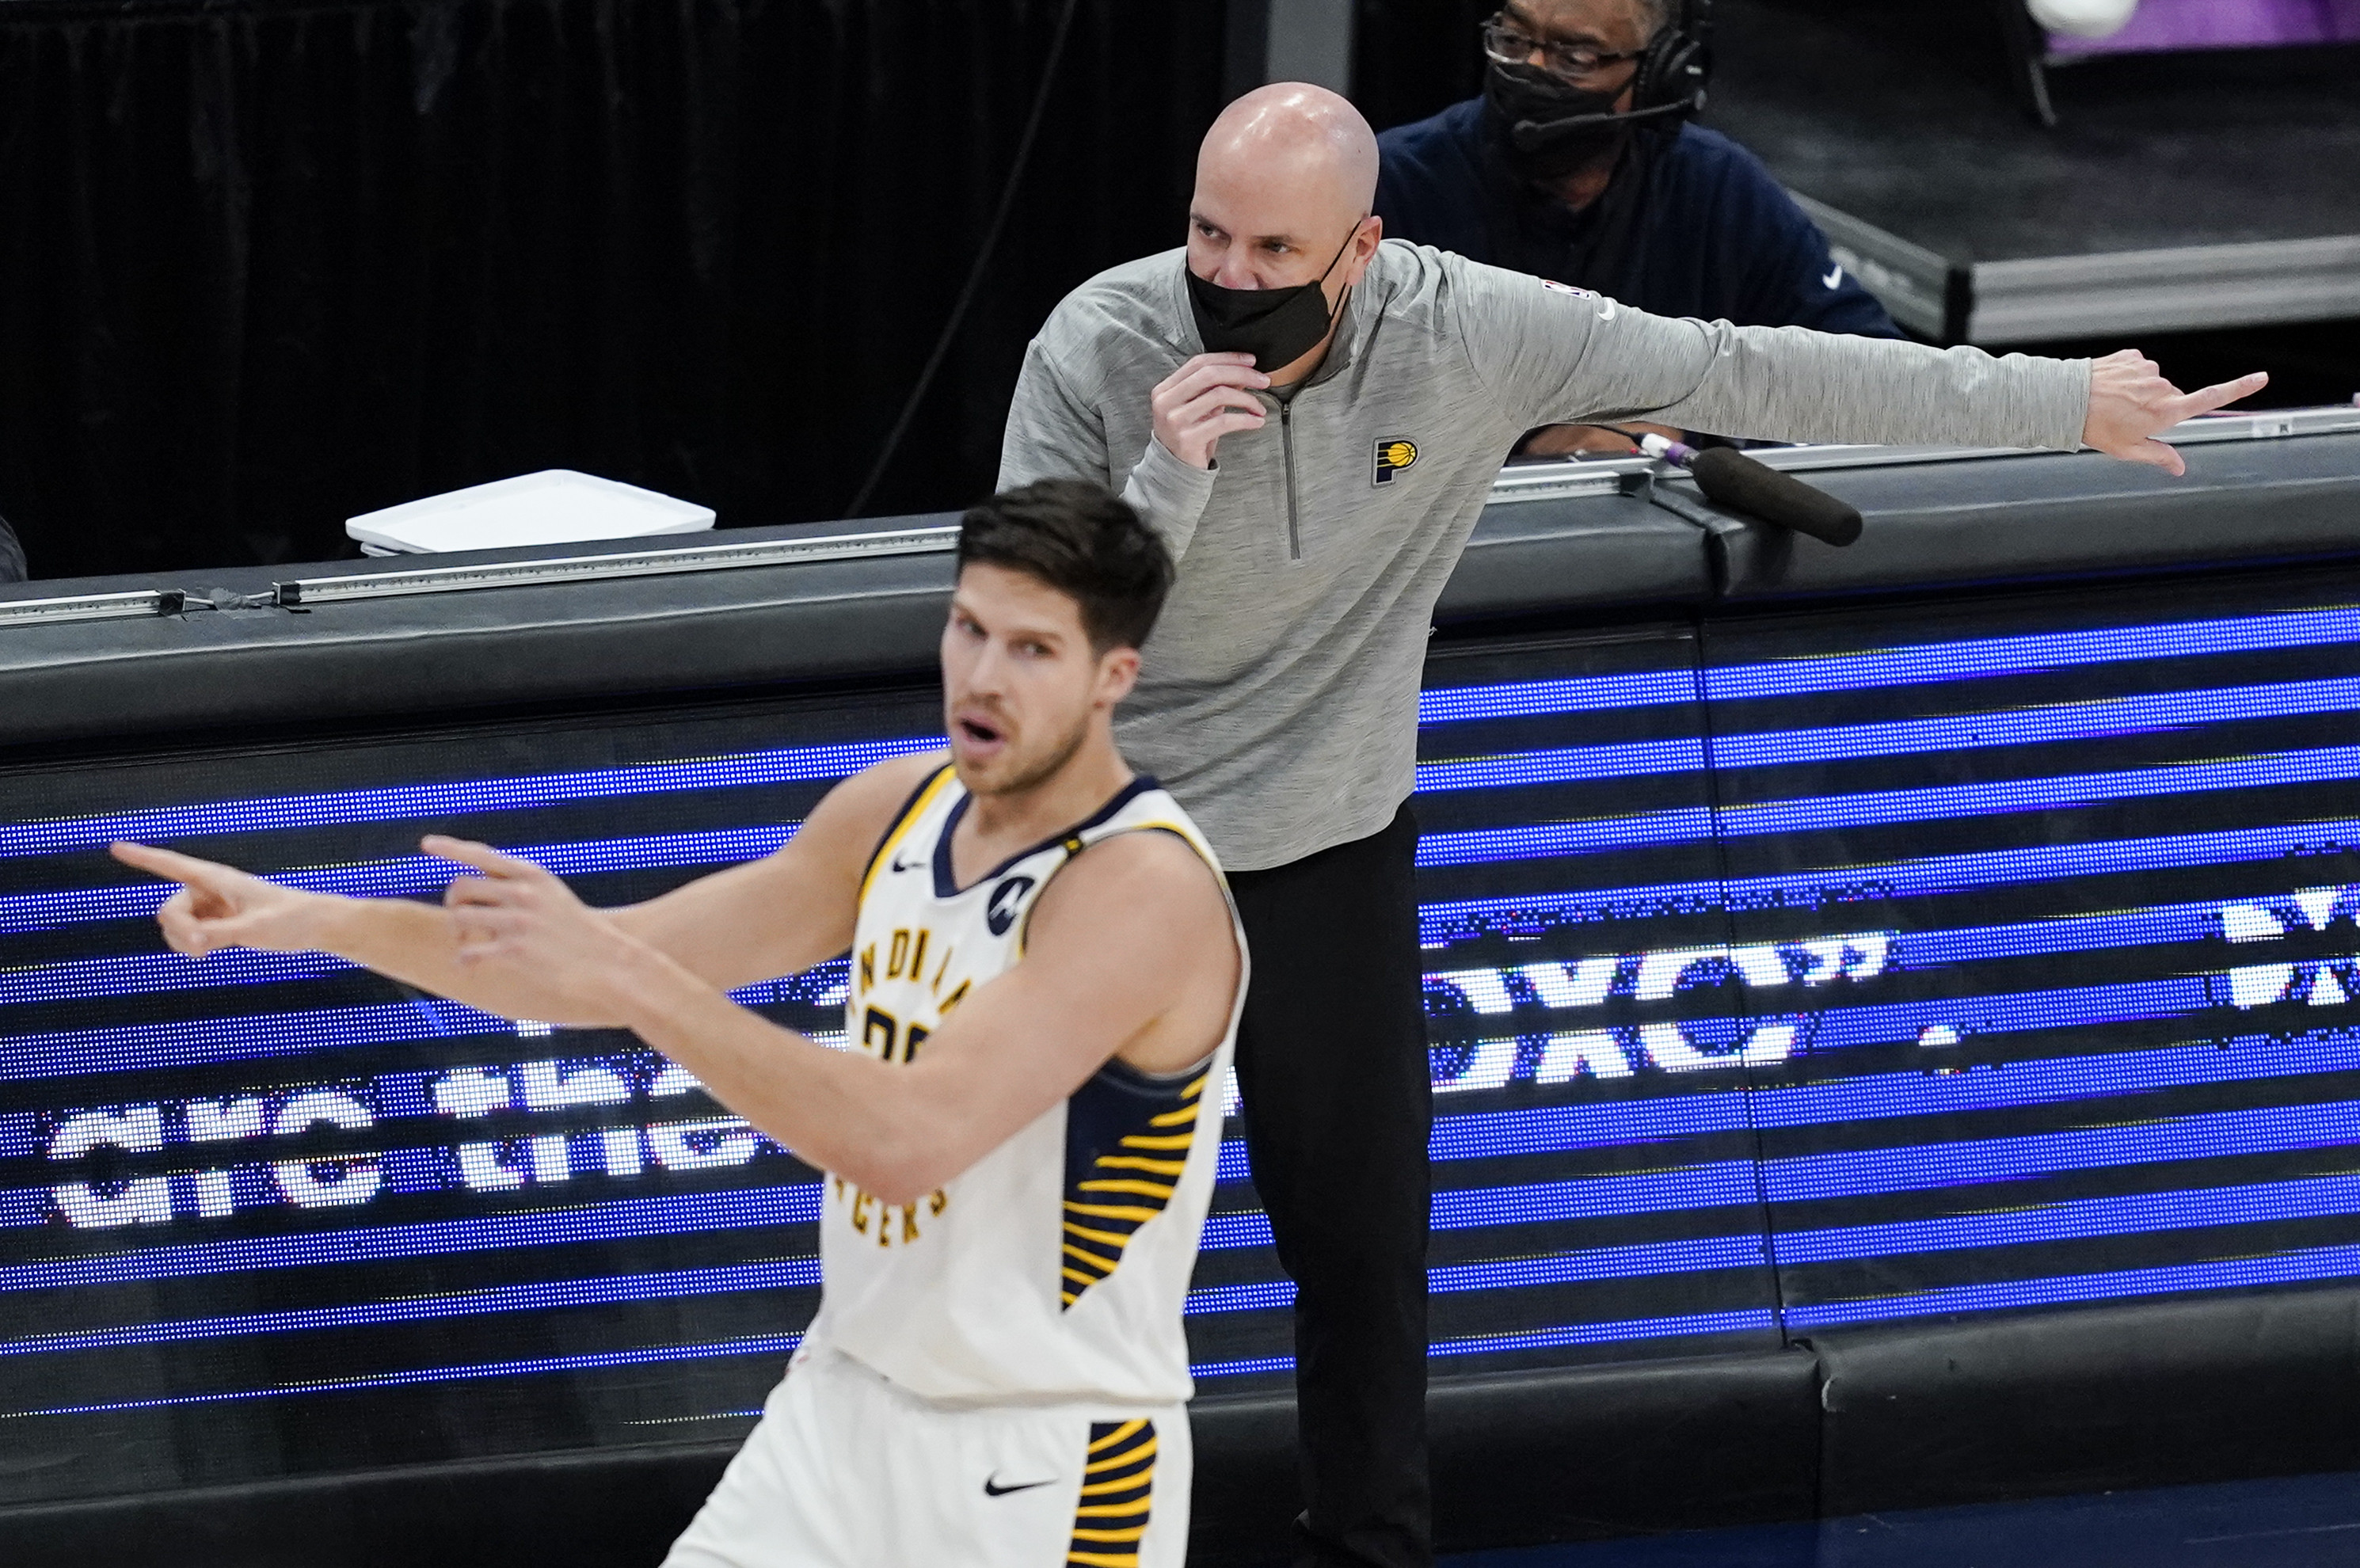 Woj: Pacers' Nate Bjorkgren's Future Uncertain amid Struggles, 'Staff Difficulties' thumbnail